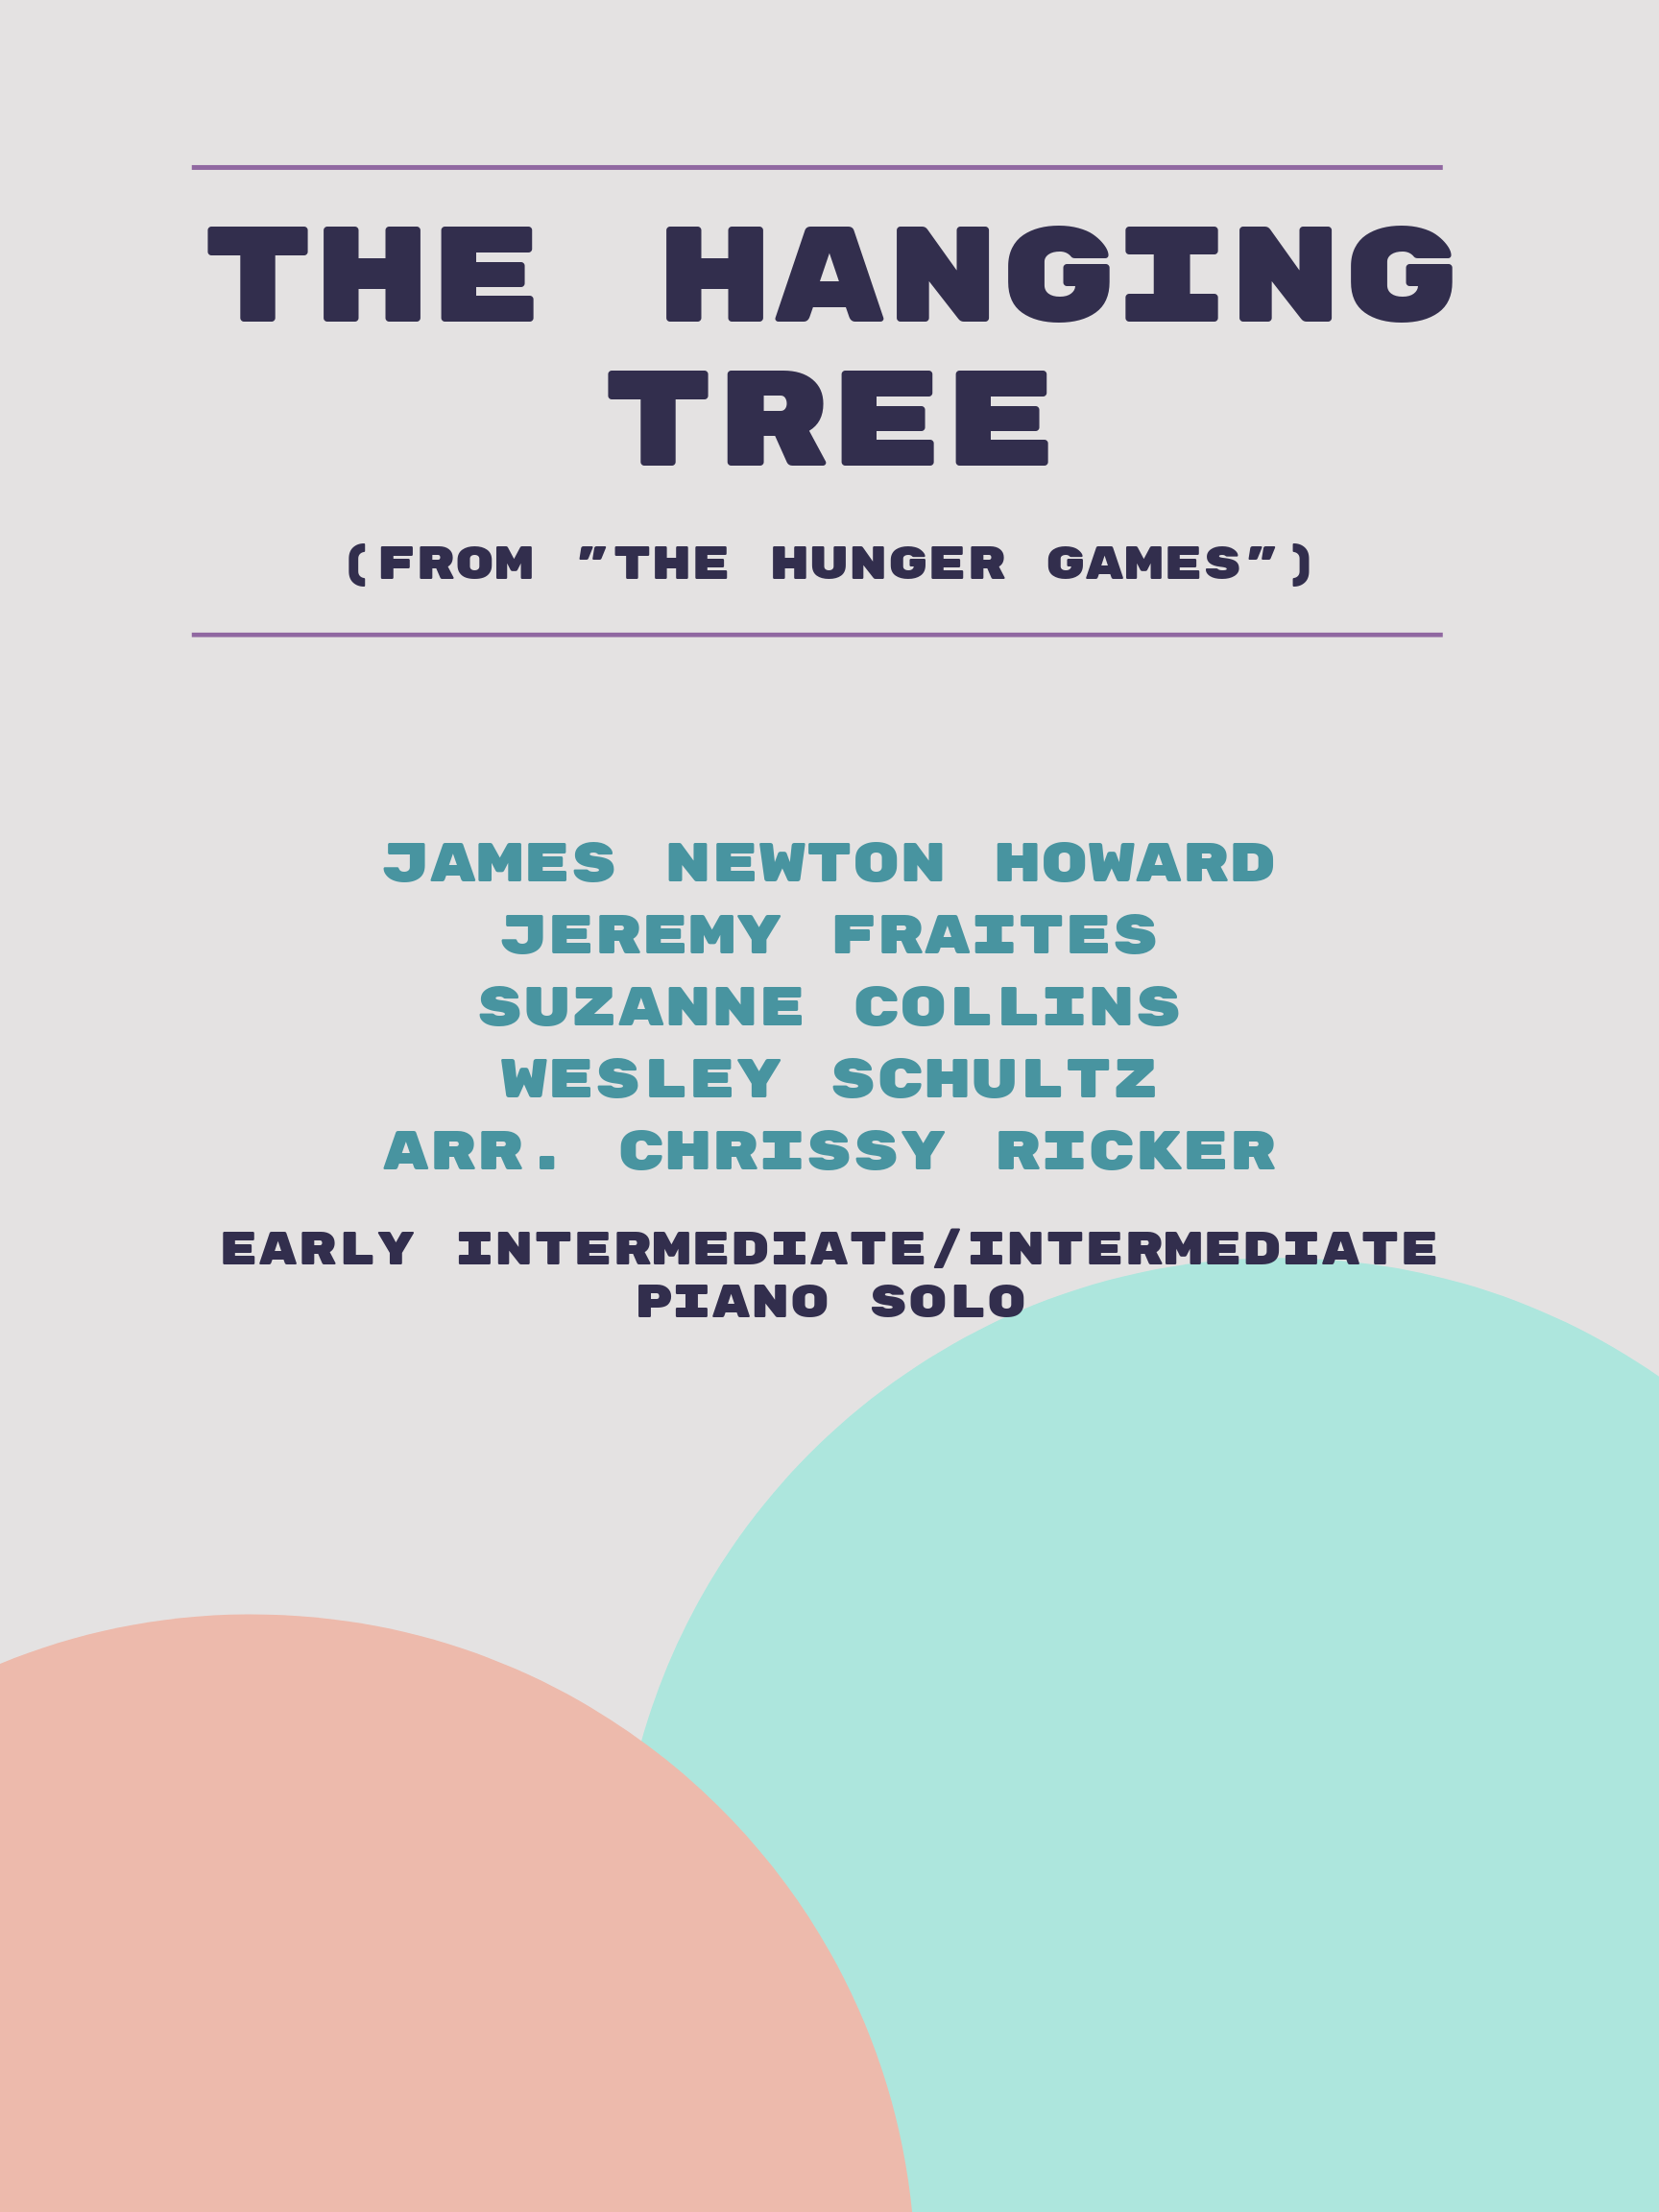 The Hanging Tree by James Newton Howard, Jeremy Fraites, Suzanne Collins, Wesley Schultz